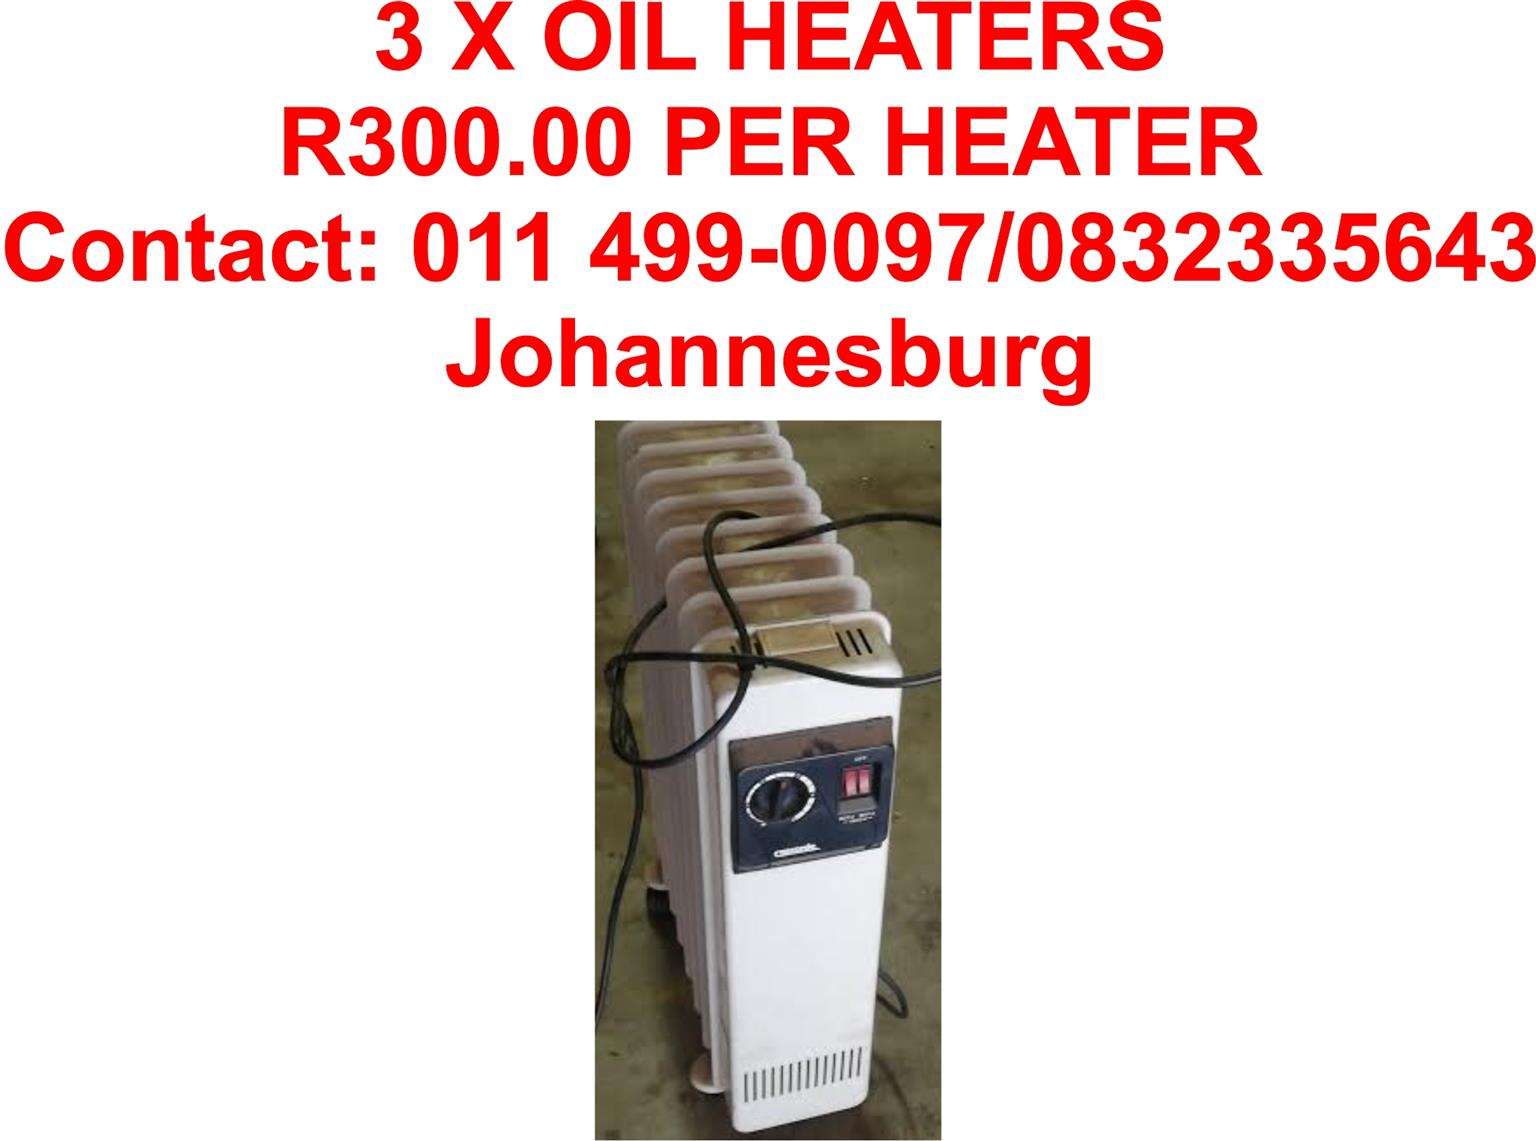 3 x Oil Heaters for Sale